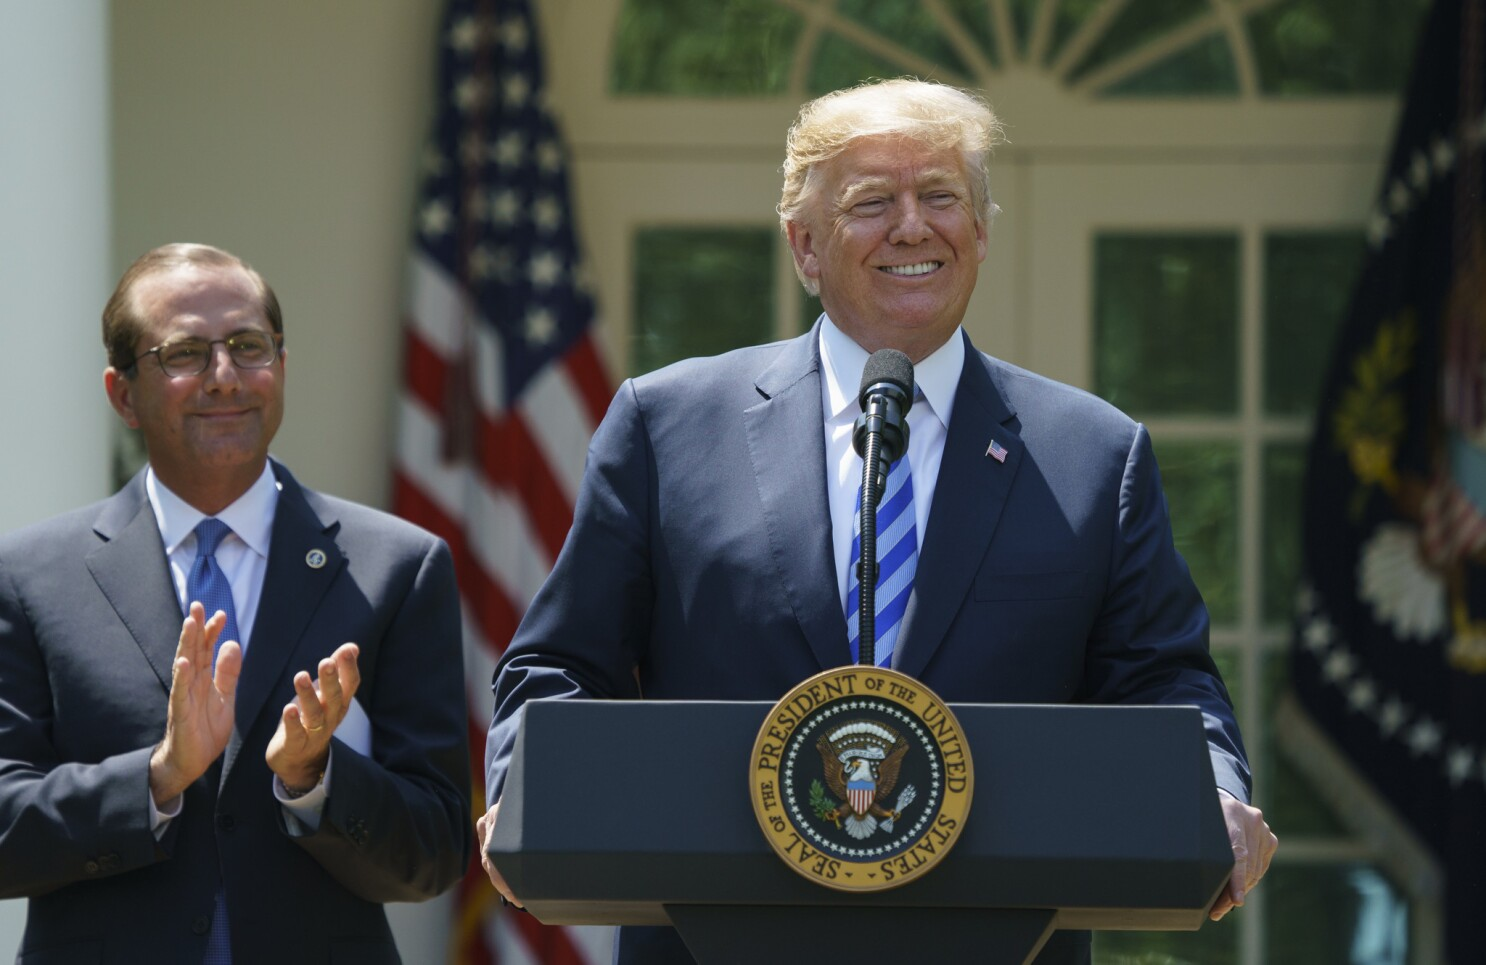 Column: The 10 worst things Trump has done to harm your healthcare